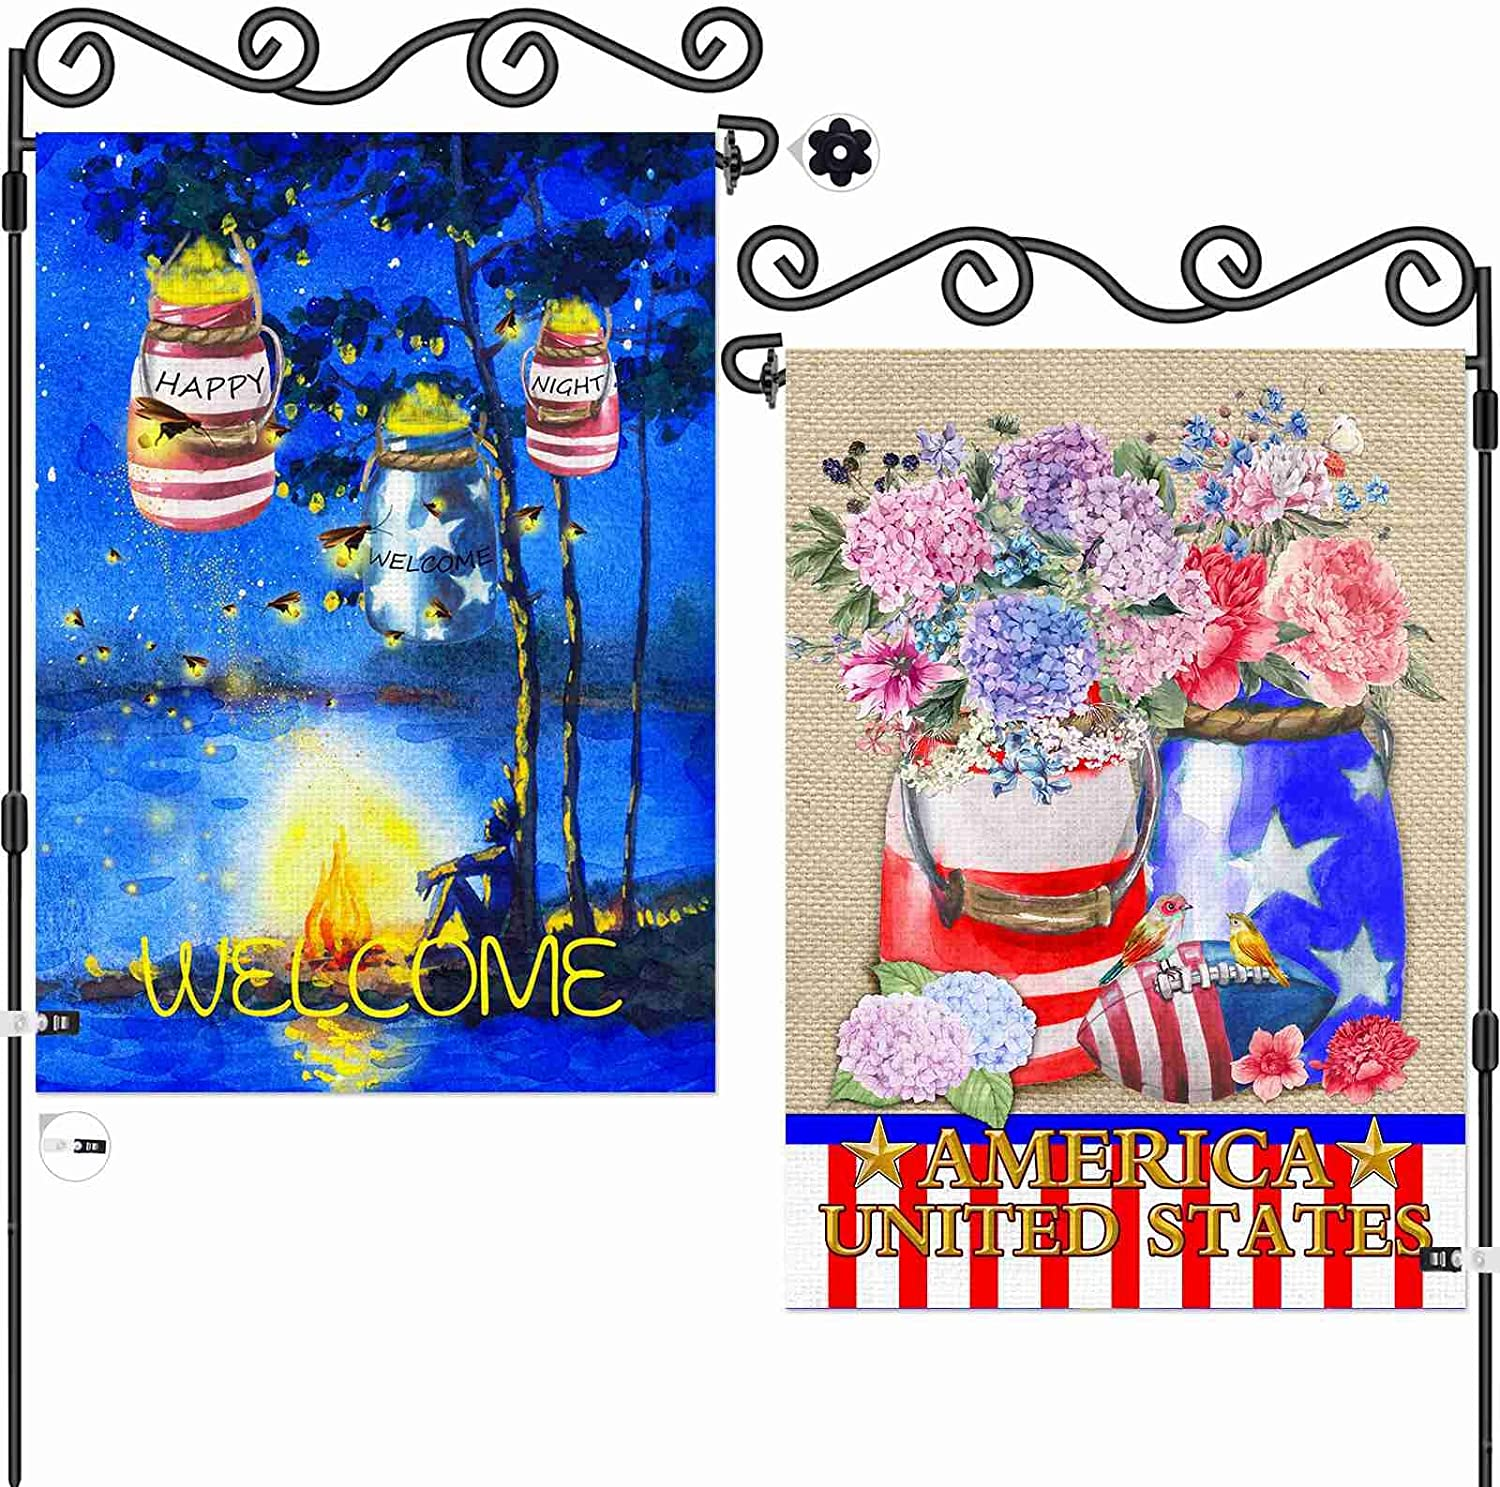 AOKDEER Summer Garden Flag 12.5x18 Prime, 2-in-1 Double Sided Burlap Summer Party Decor House Flags, American Flag Patriotic Yard Signs Gift for Patio Lawn Outdoor Decor, Different Front and Back Flag